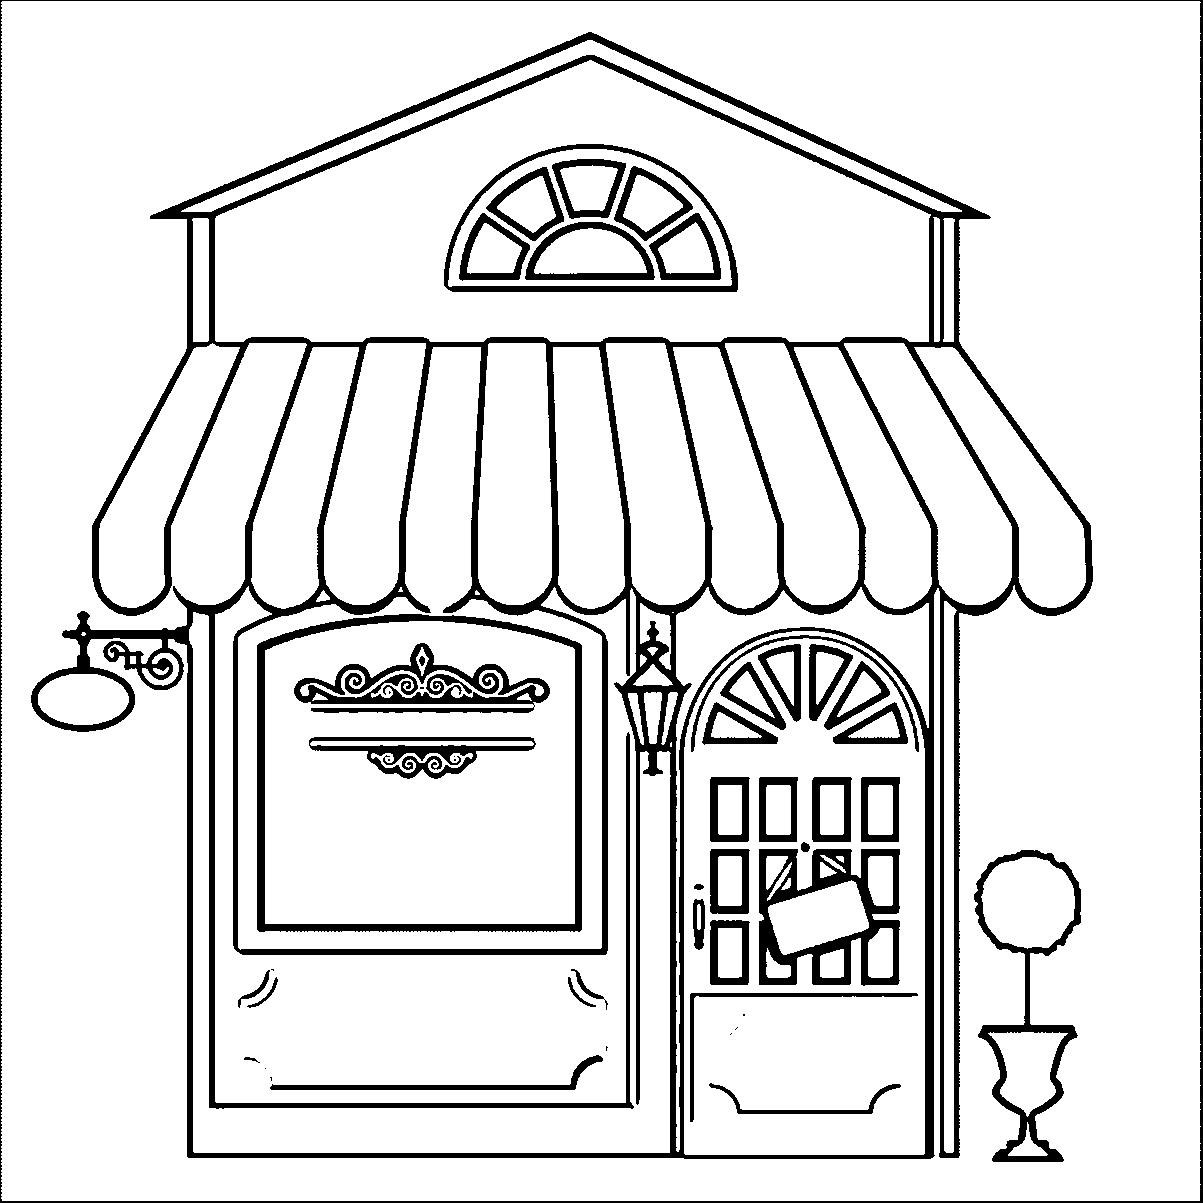 Coloring Pages for Restaurants Free Collection Of Imprimer Coloriage tous Au Restaurant 2016 to Print